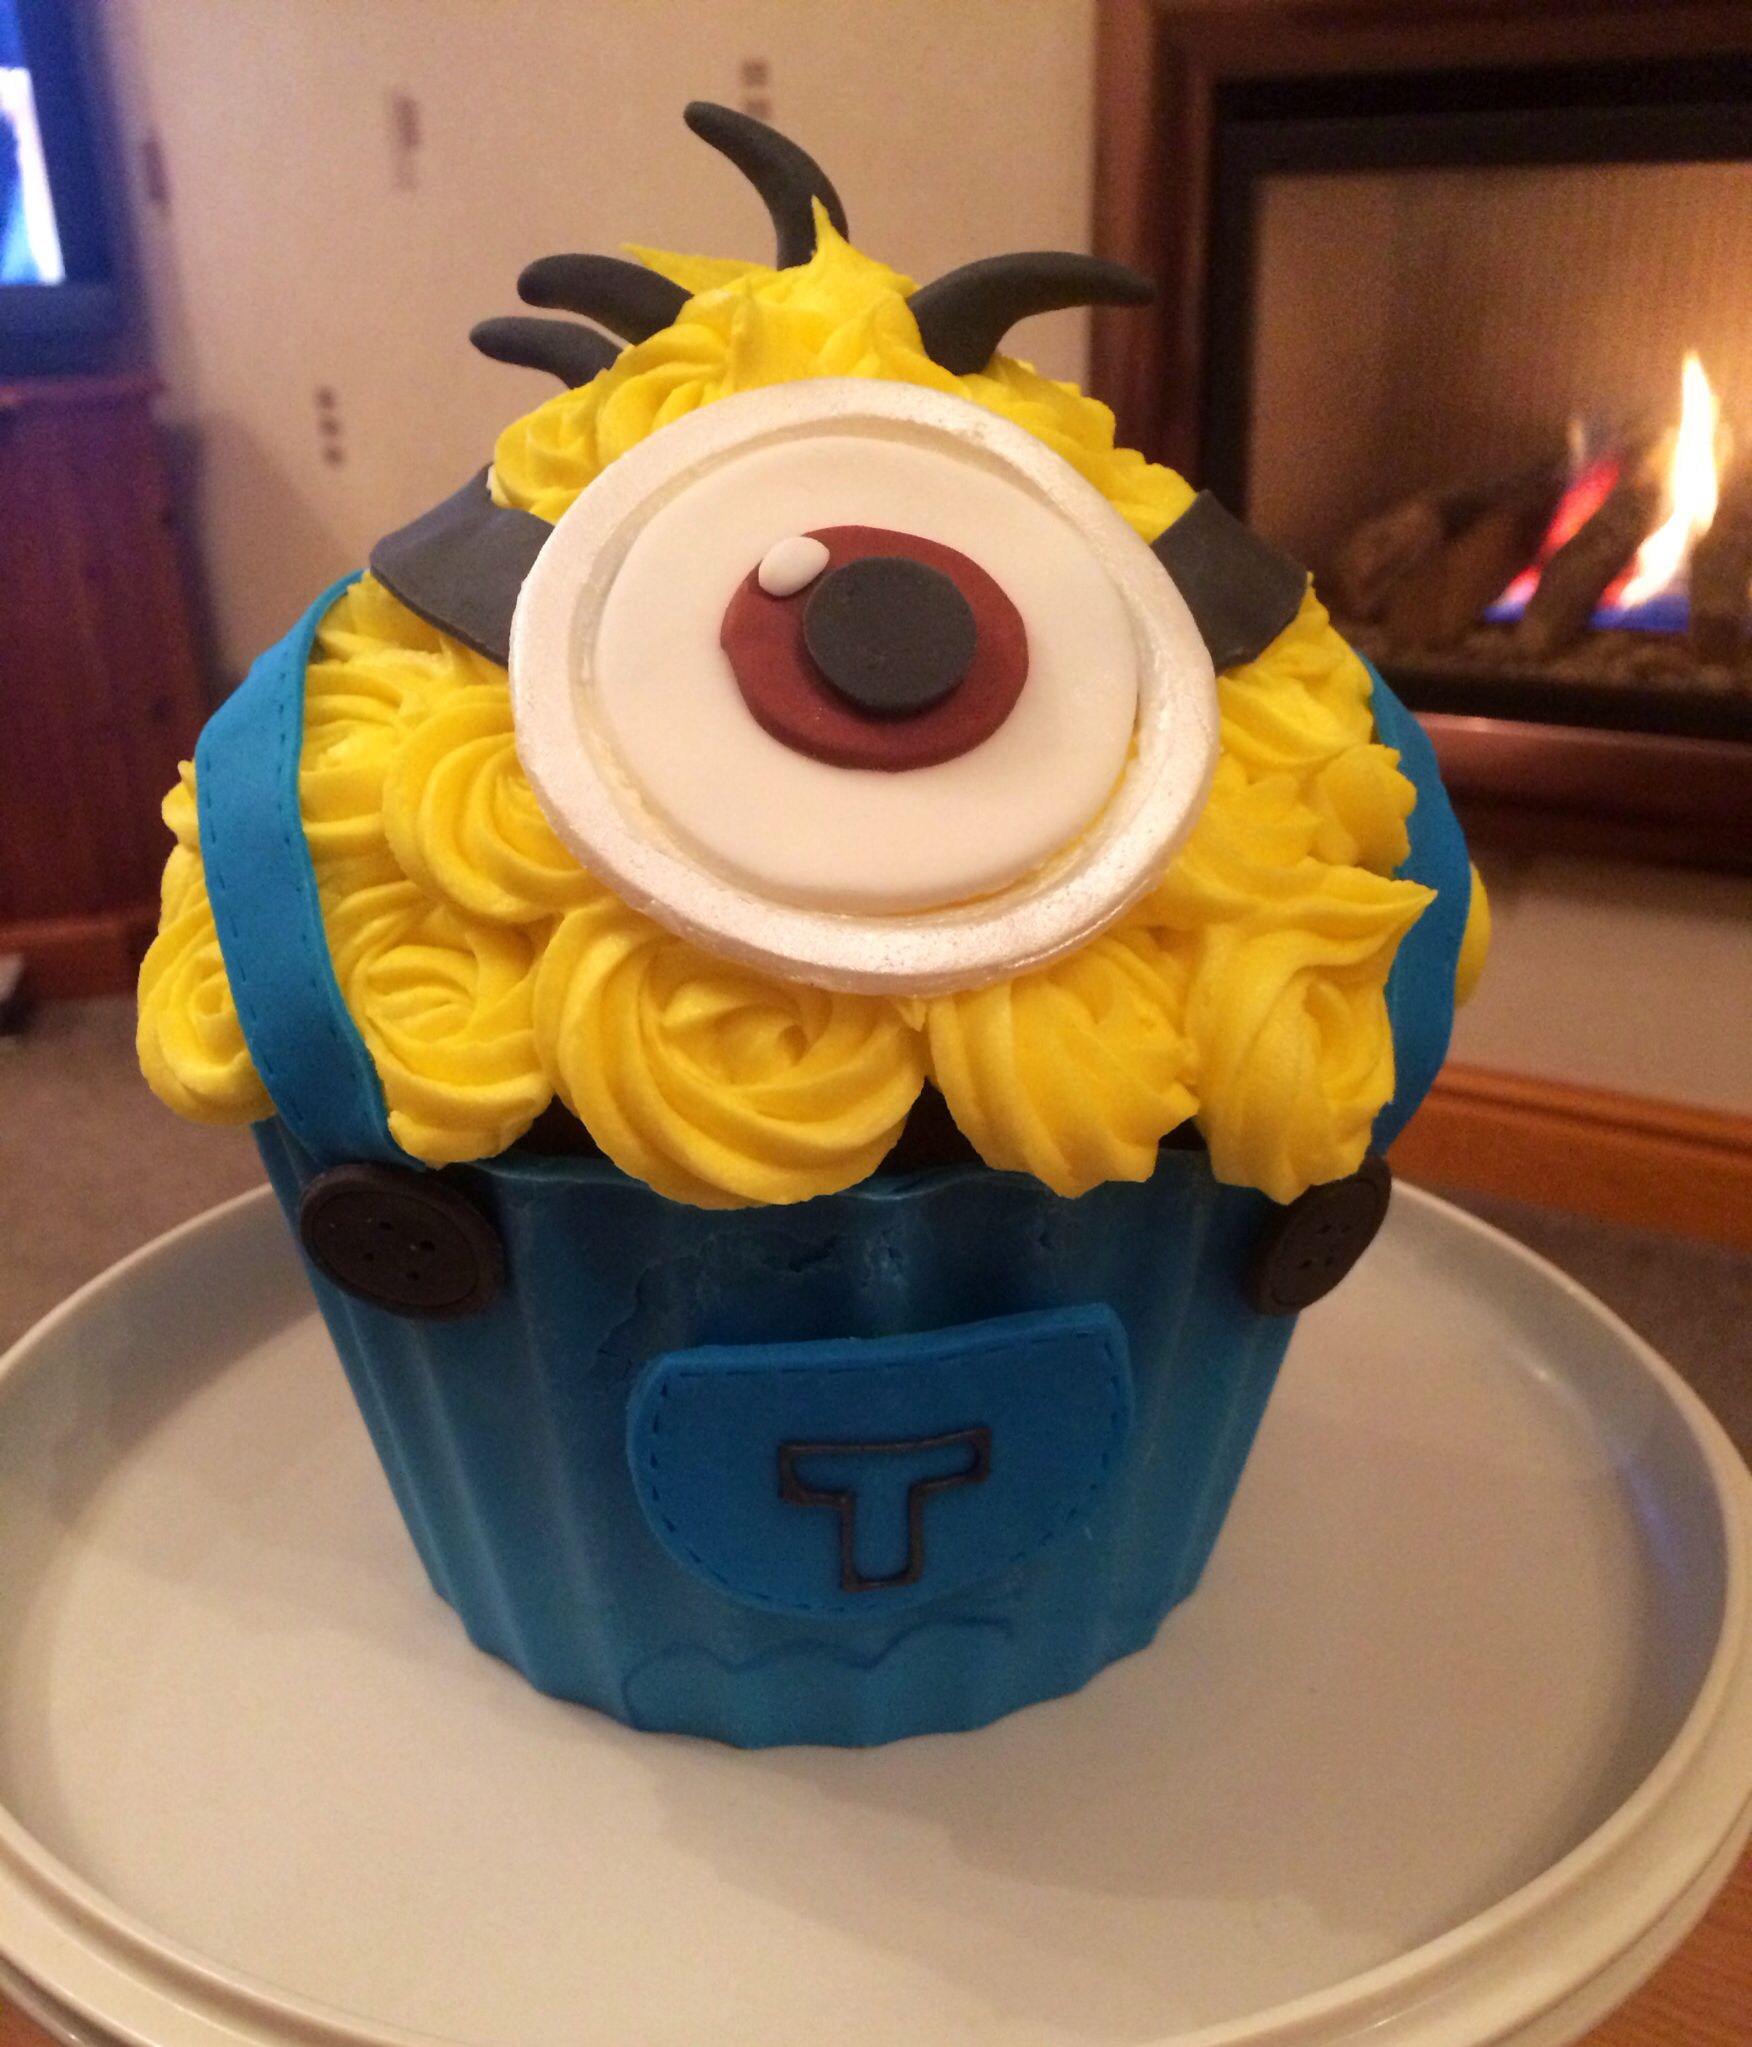 Minion Giant Cupcake From Dispicable Me Giant Cupcake Cakes Big Cupcake Giant Cupcake Mould